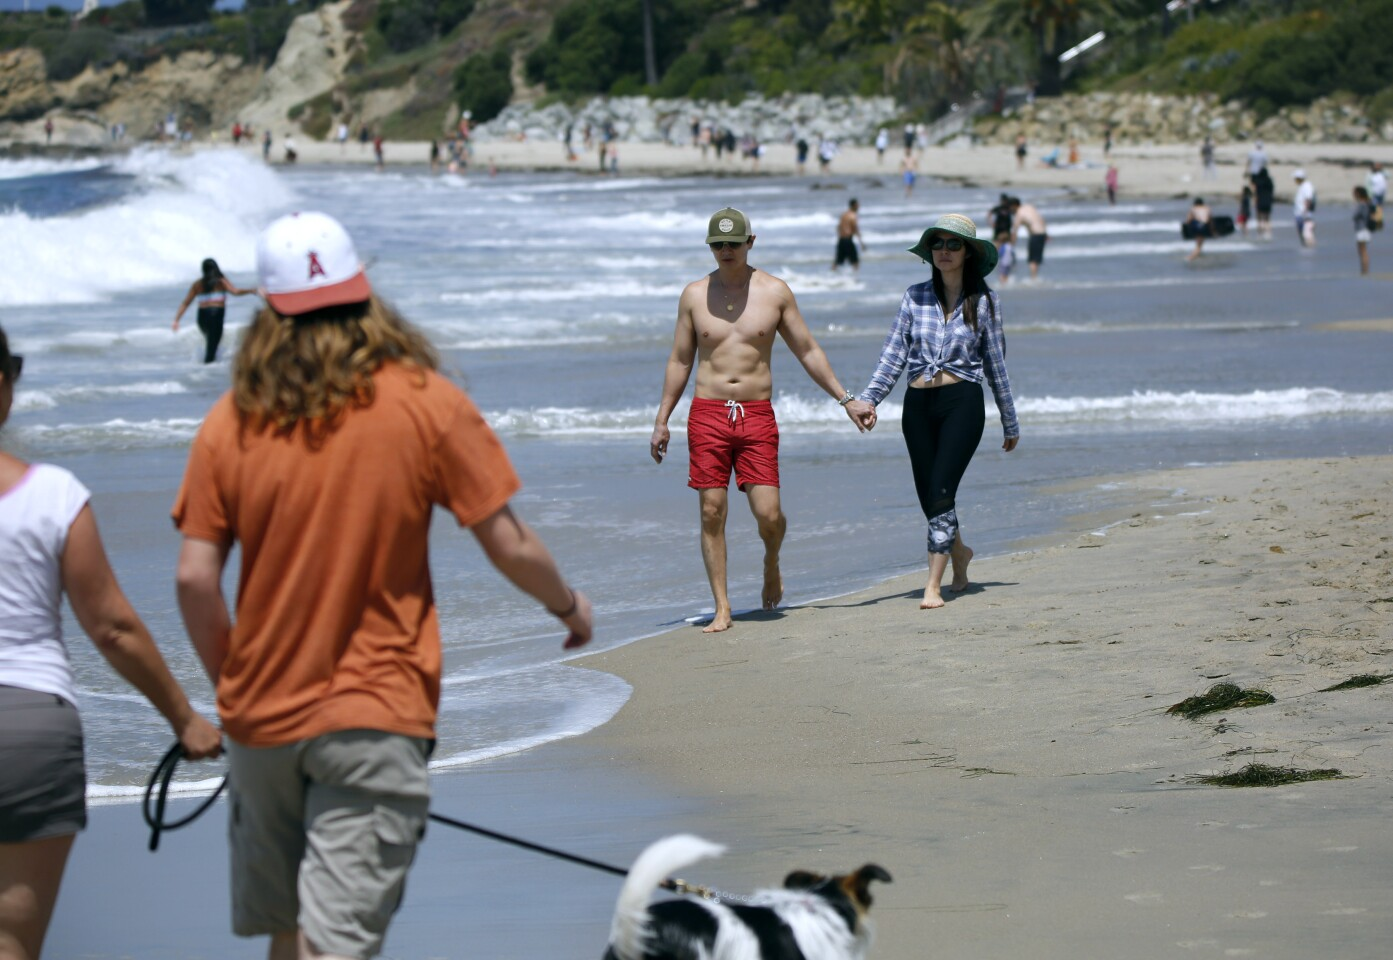 Dermatologists Dr. Anthony Huynh, center left, and Dr. Diana Zhang, both 47 and from Laguna Beach, enjoy a walk on the beach on a warm sunny day in Laguna Beach on Saturday.